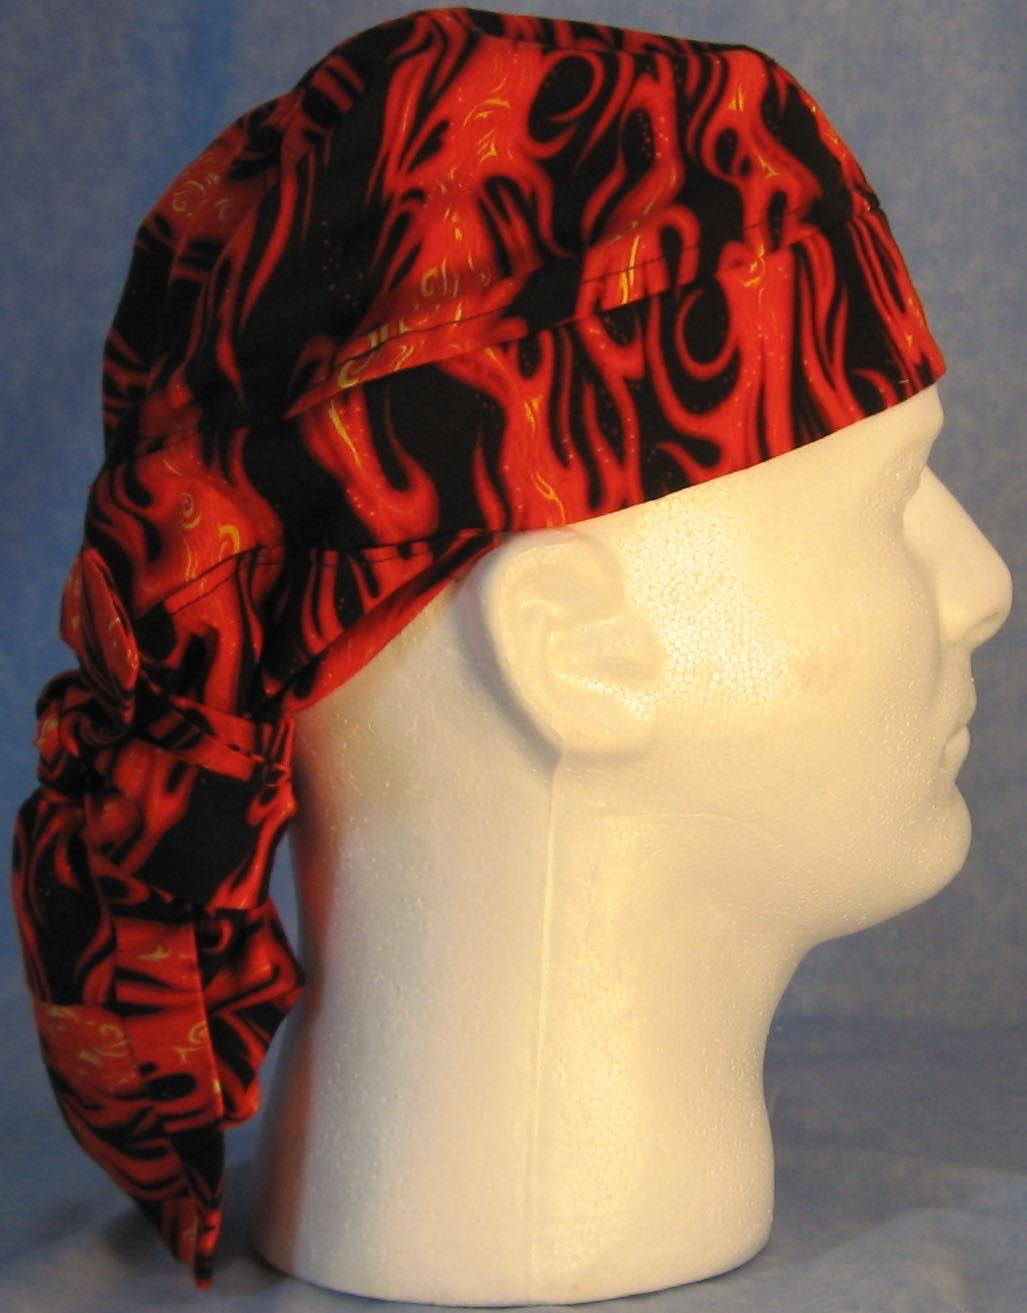 Hair Bag Do Rag in Red Orange Flames - Youth L-XL-Adult S